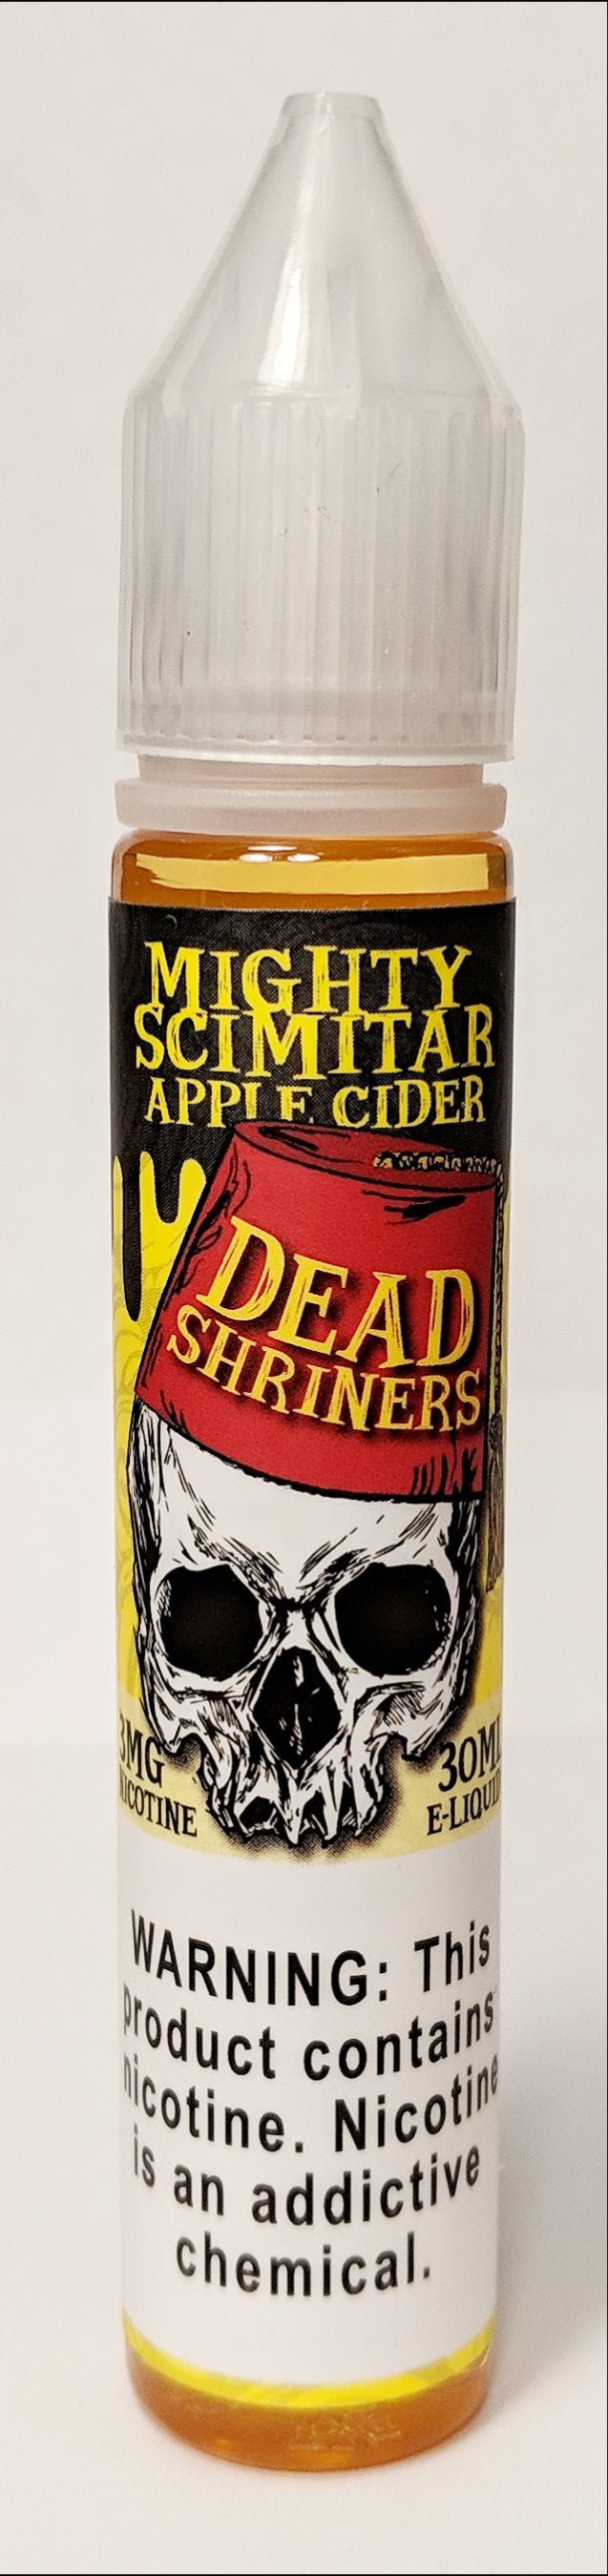 Dead Shiners - Mighty Scimitar - 30ml